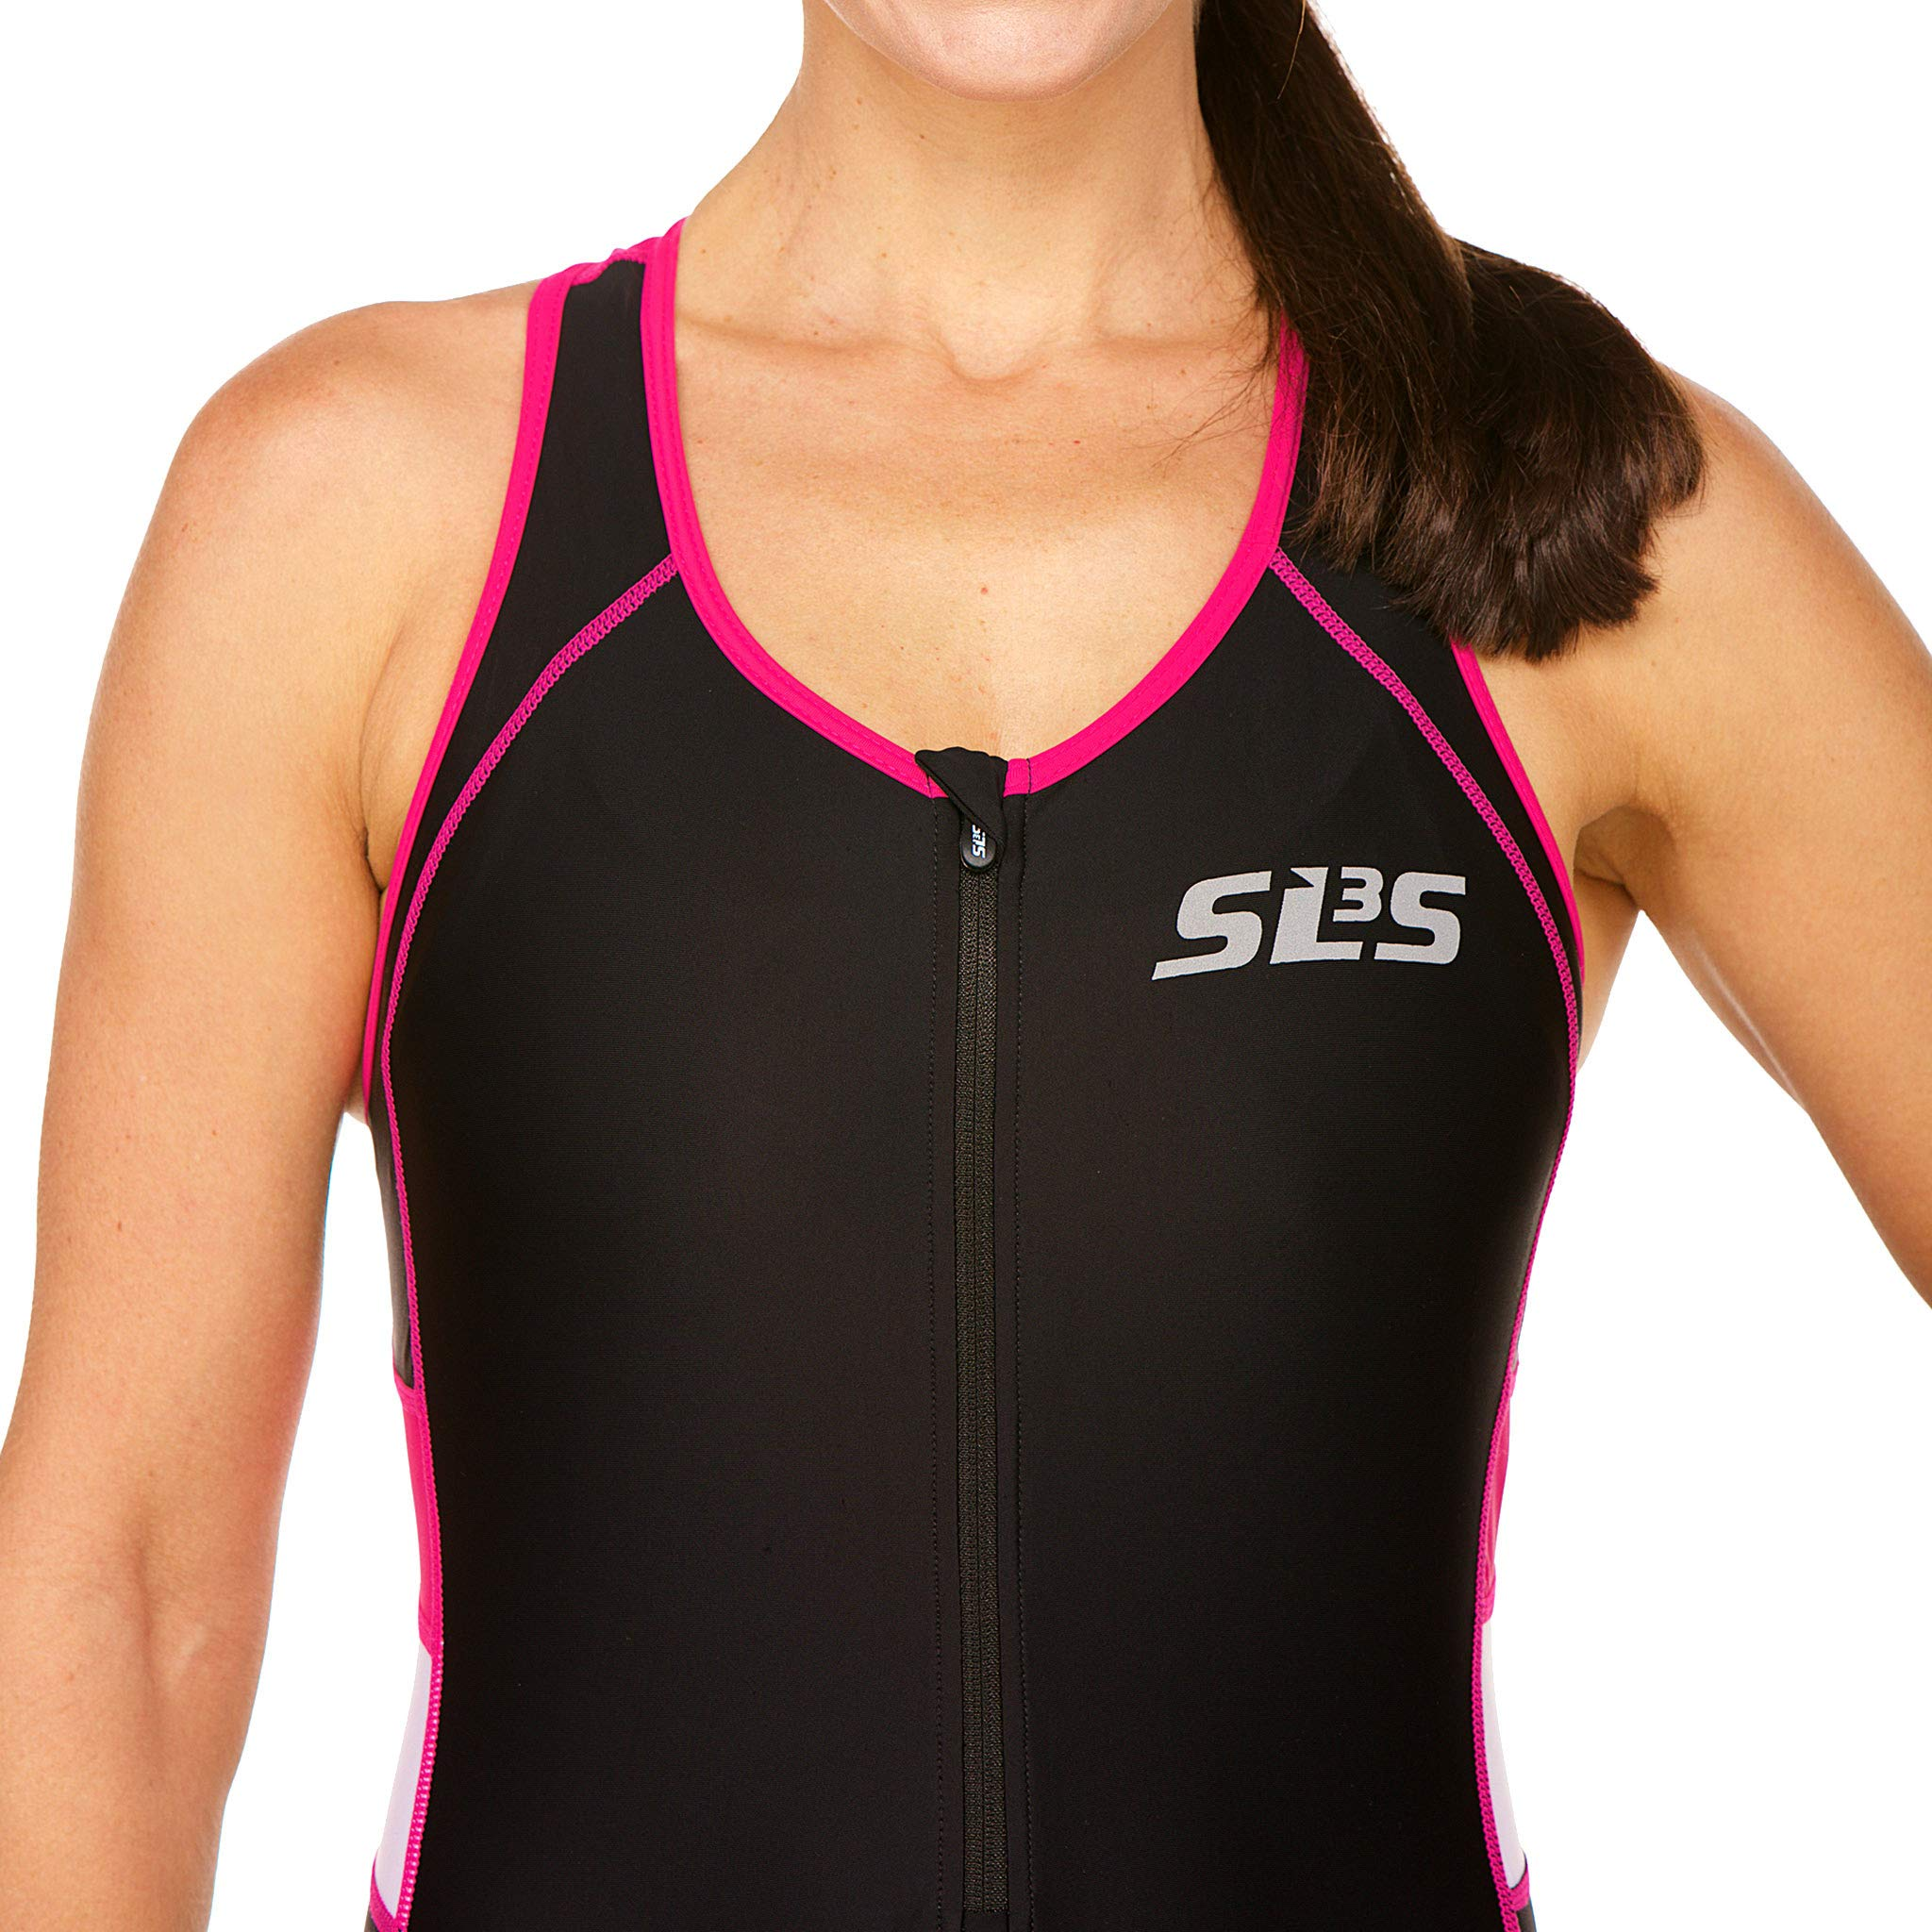 SLS3 Women`s Triathlon Suit FX | Womens Trisuits | 1 Pocket Triathlon Gear Suits Women | Anti-Friction Seams Womens Tri Suit | German Designed (Black/Bright Rose, M) by SLS3 (Image #6)